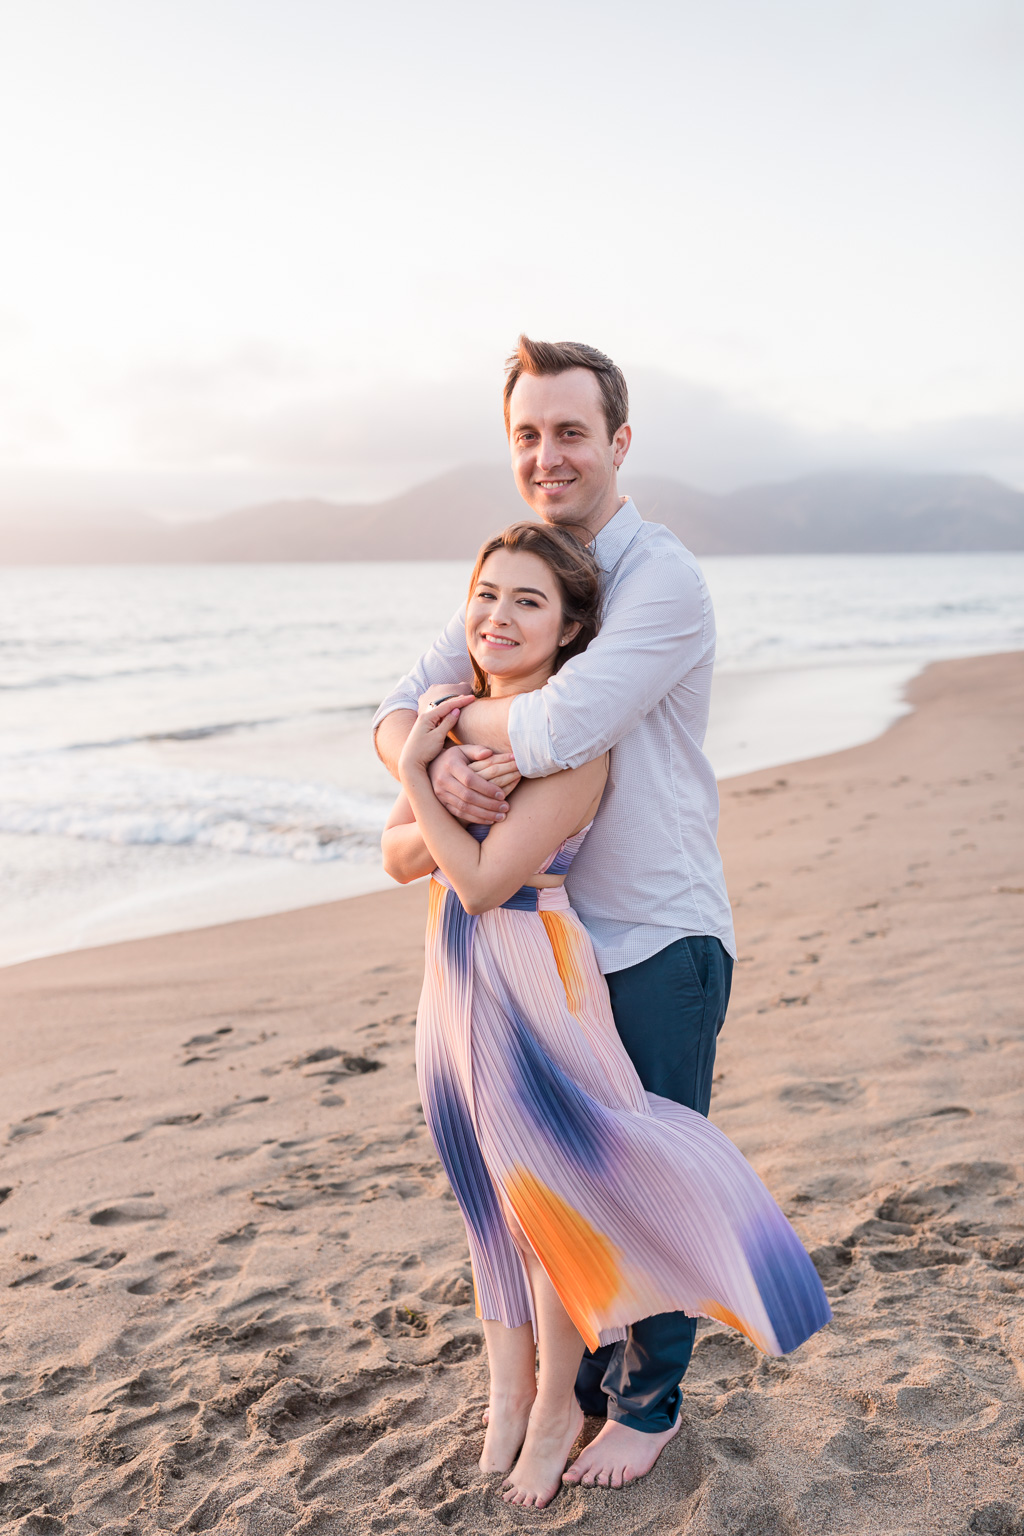 San Francisco beach sunset engagement save the date couple portrait